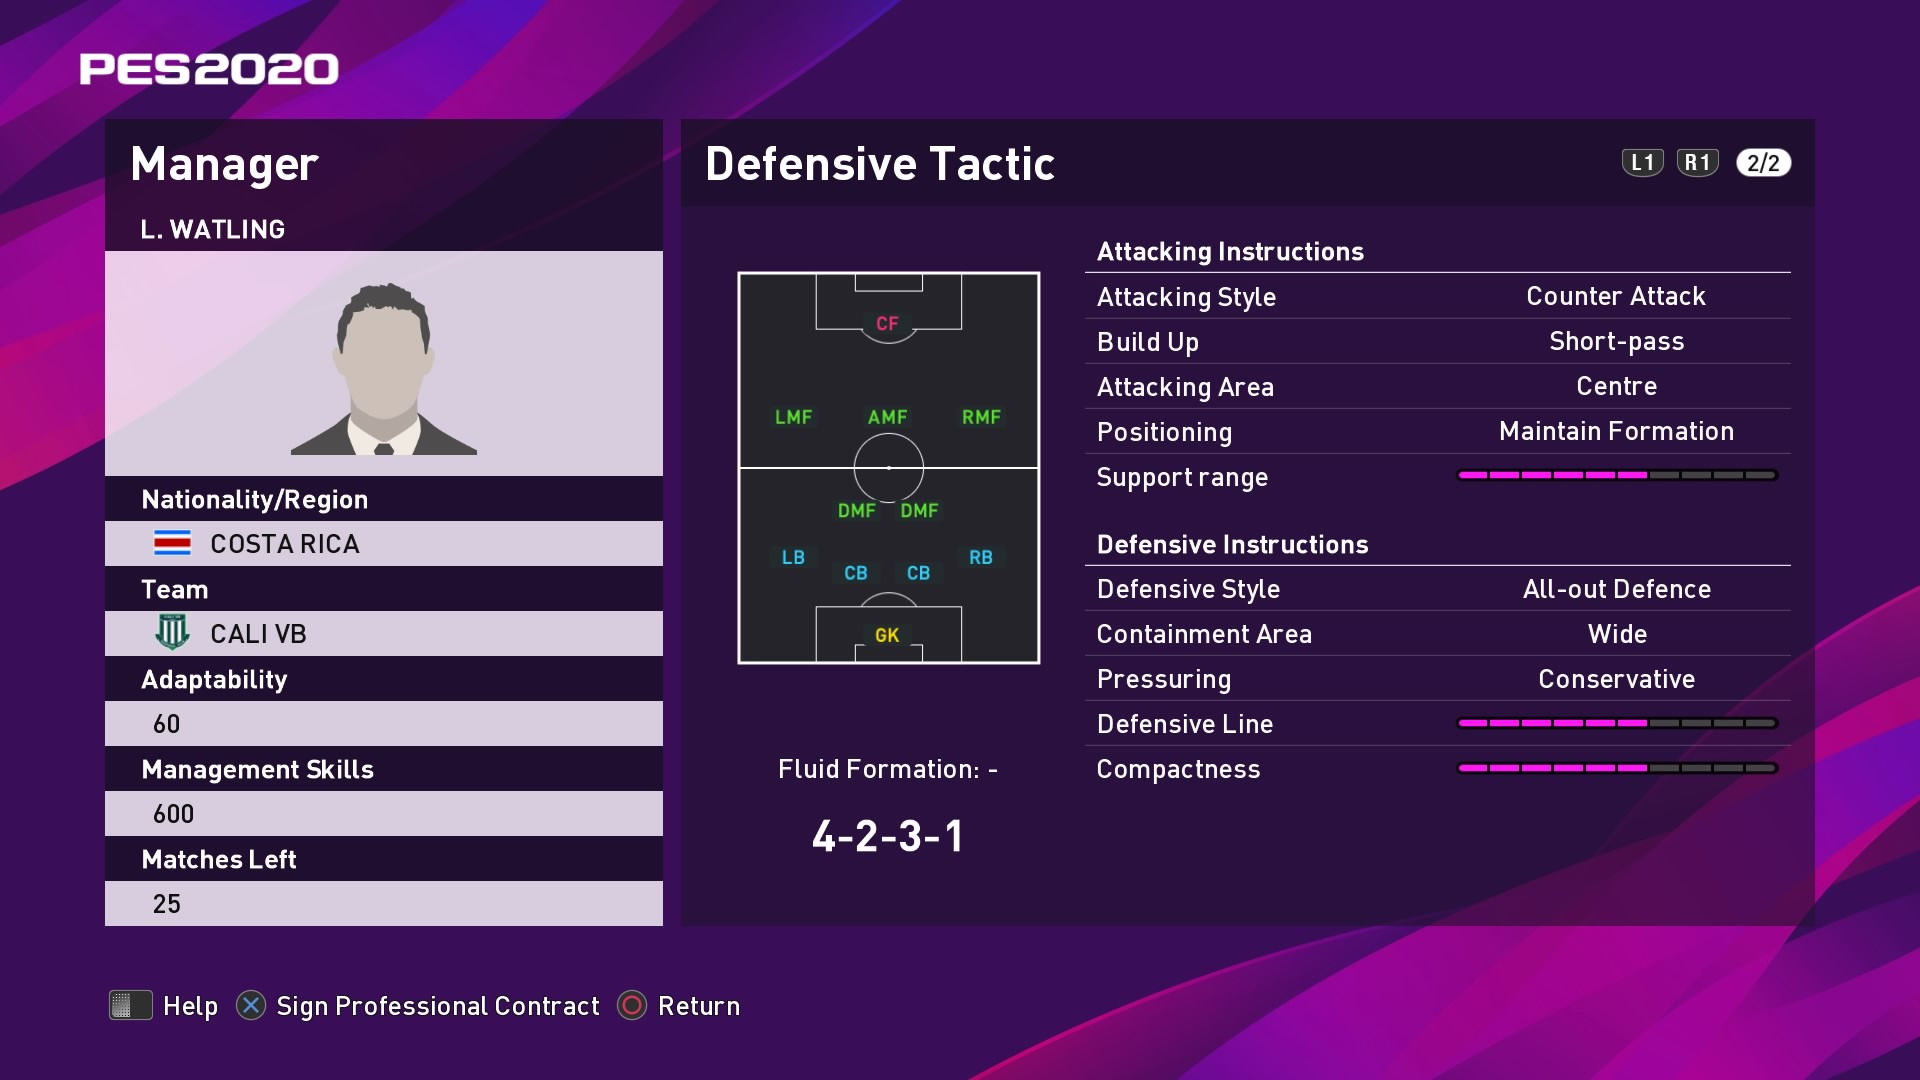 L. Watling (Alfredo Arias) Defensive Tactic in PES 2020 myClub